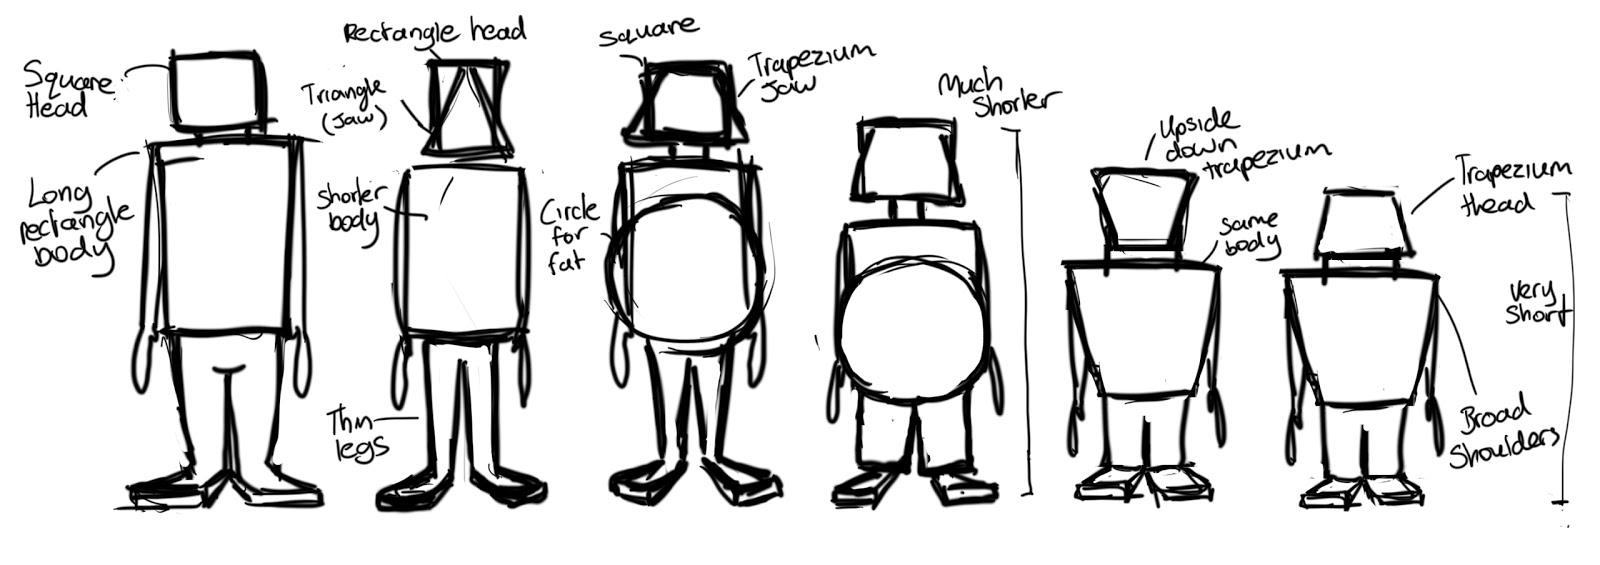 Character Design Shape Theory : Ben metcalfe xb game proposal november